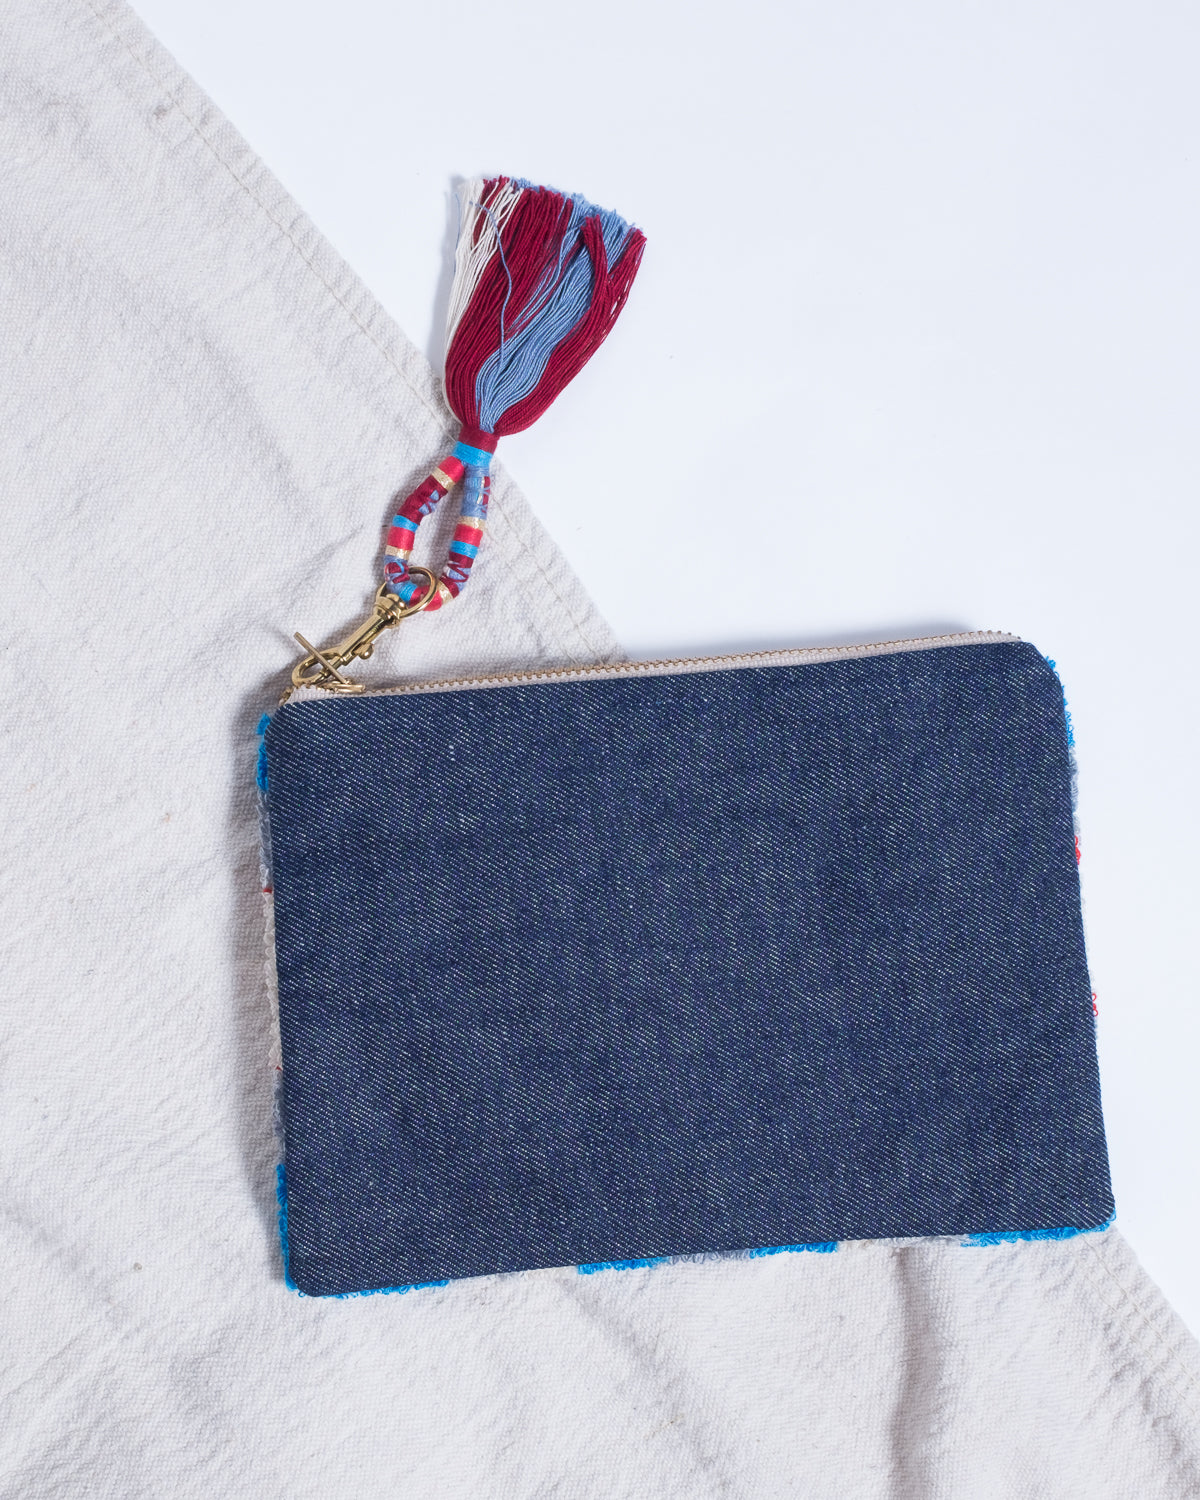 Clementines Seattle Womens Accessory Bluma Project Mesa Pouch Red Blue Cotton Brass